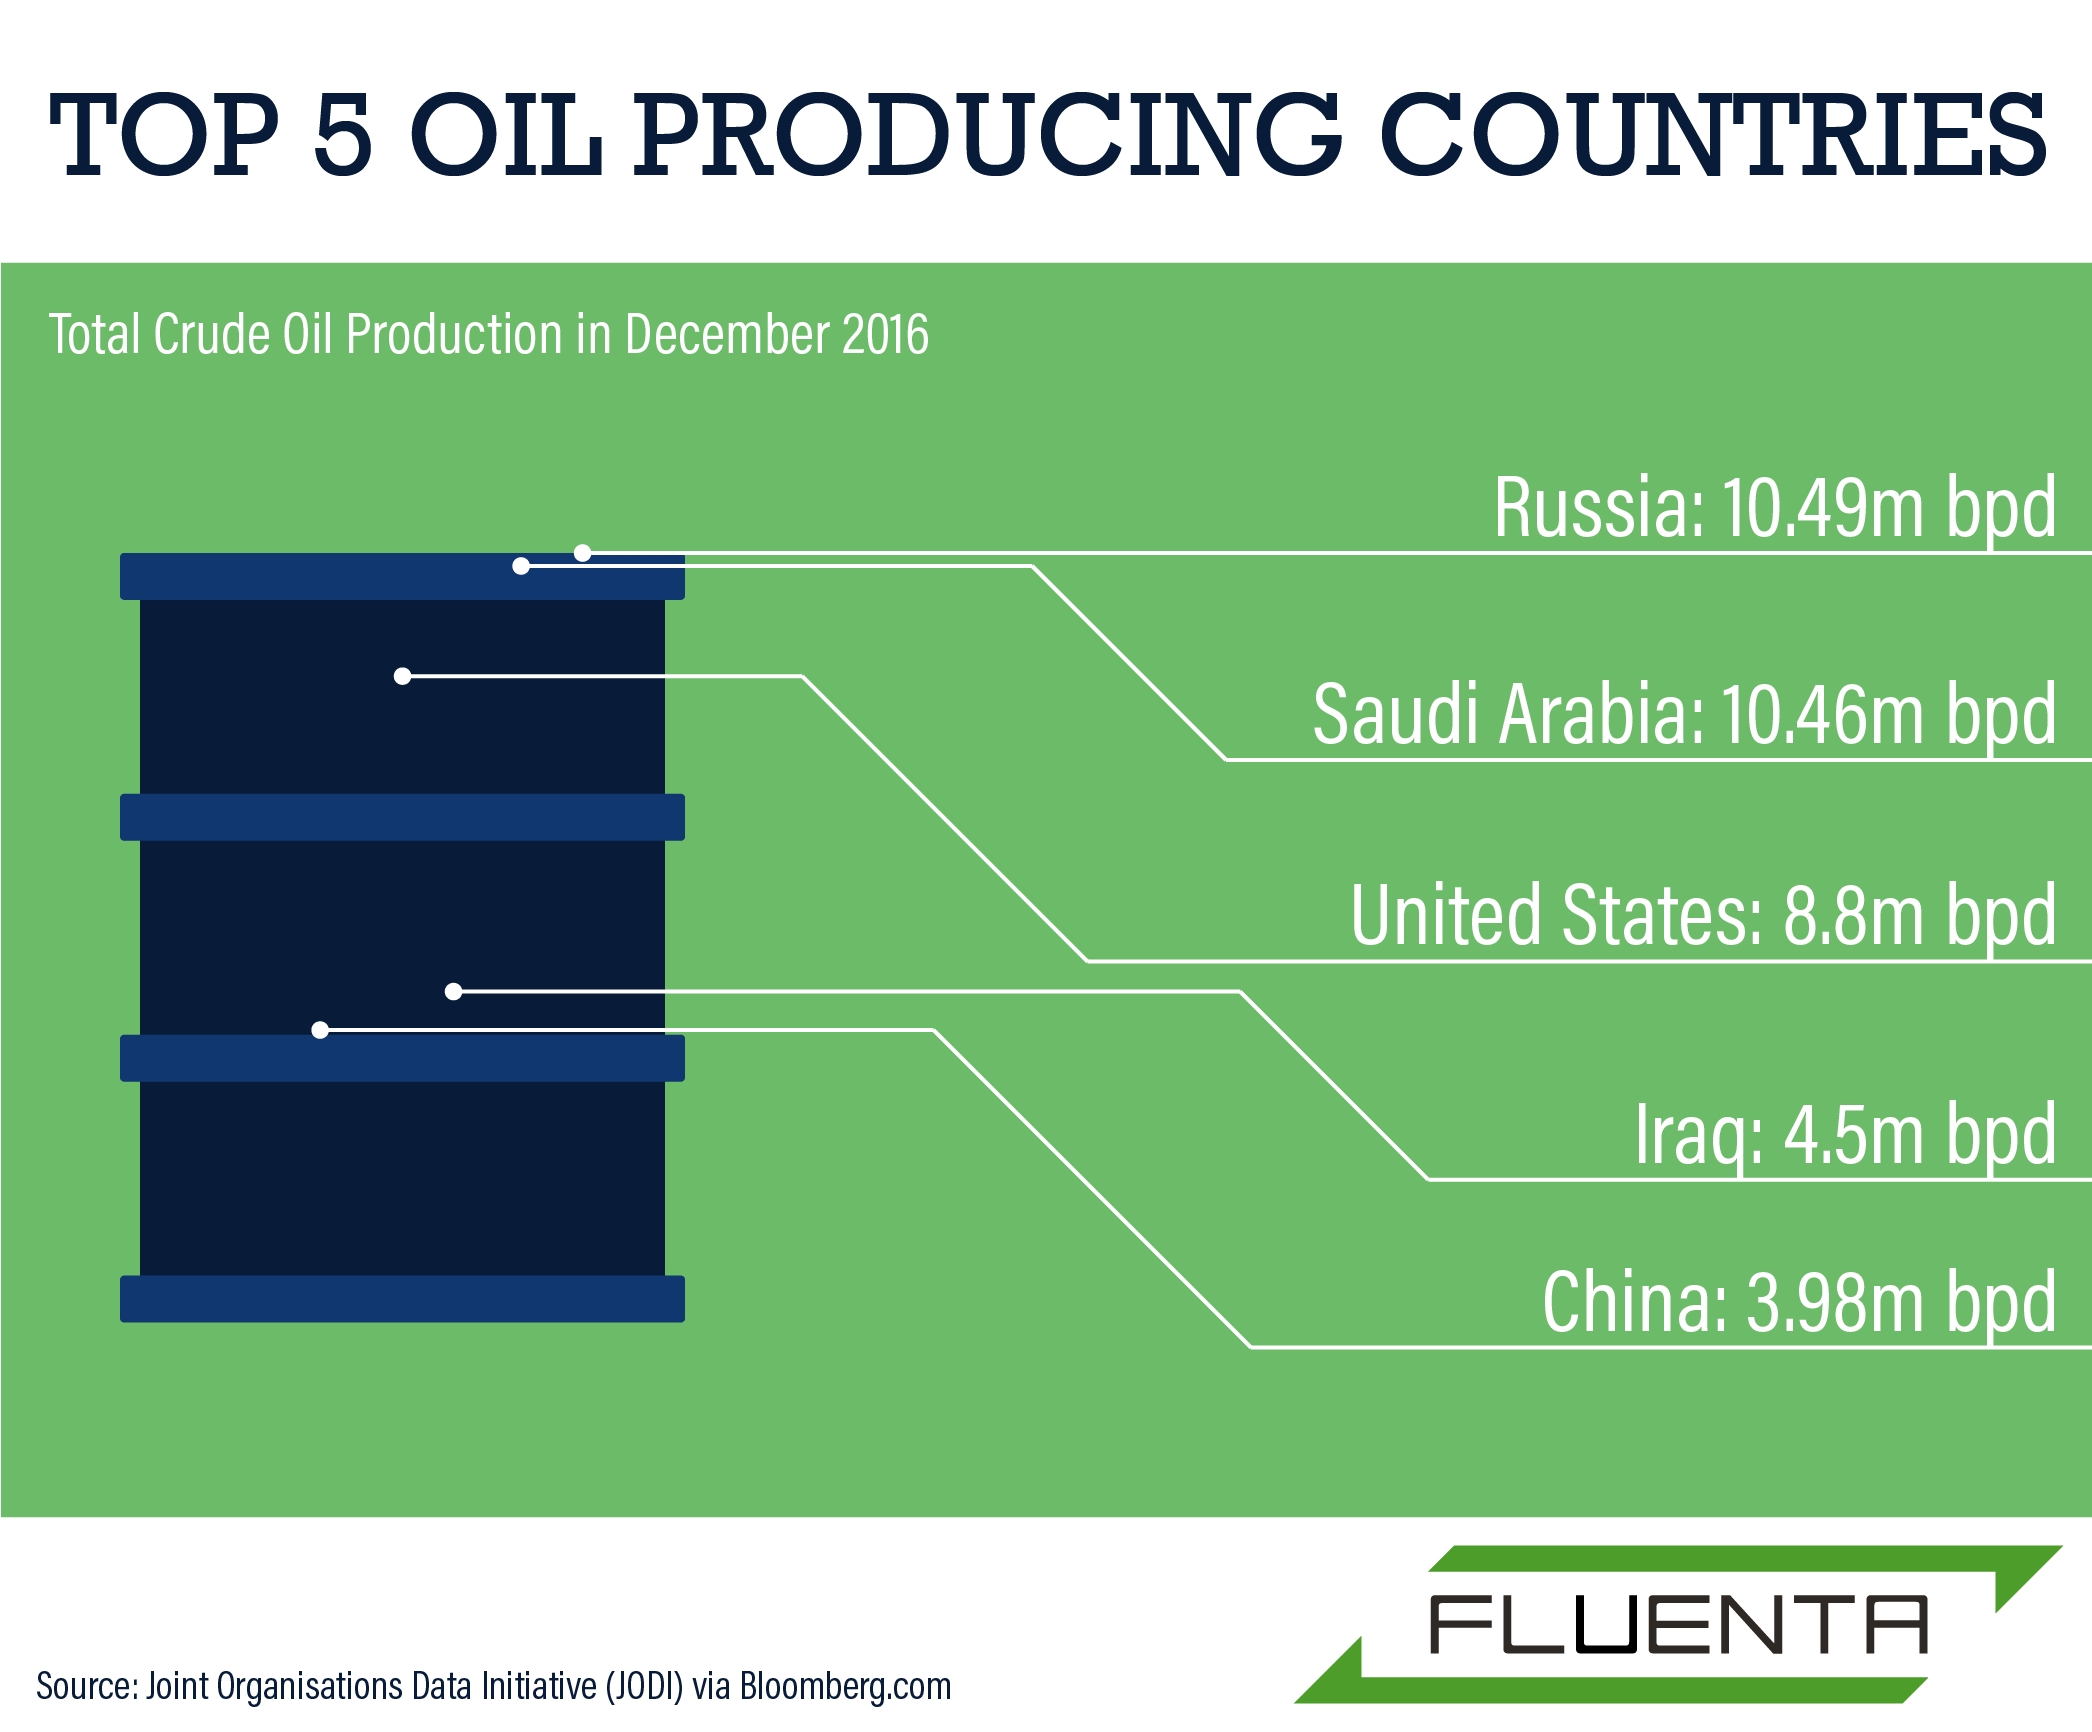 Top Oil And Gas Producing Countries 2013